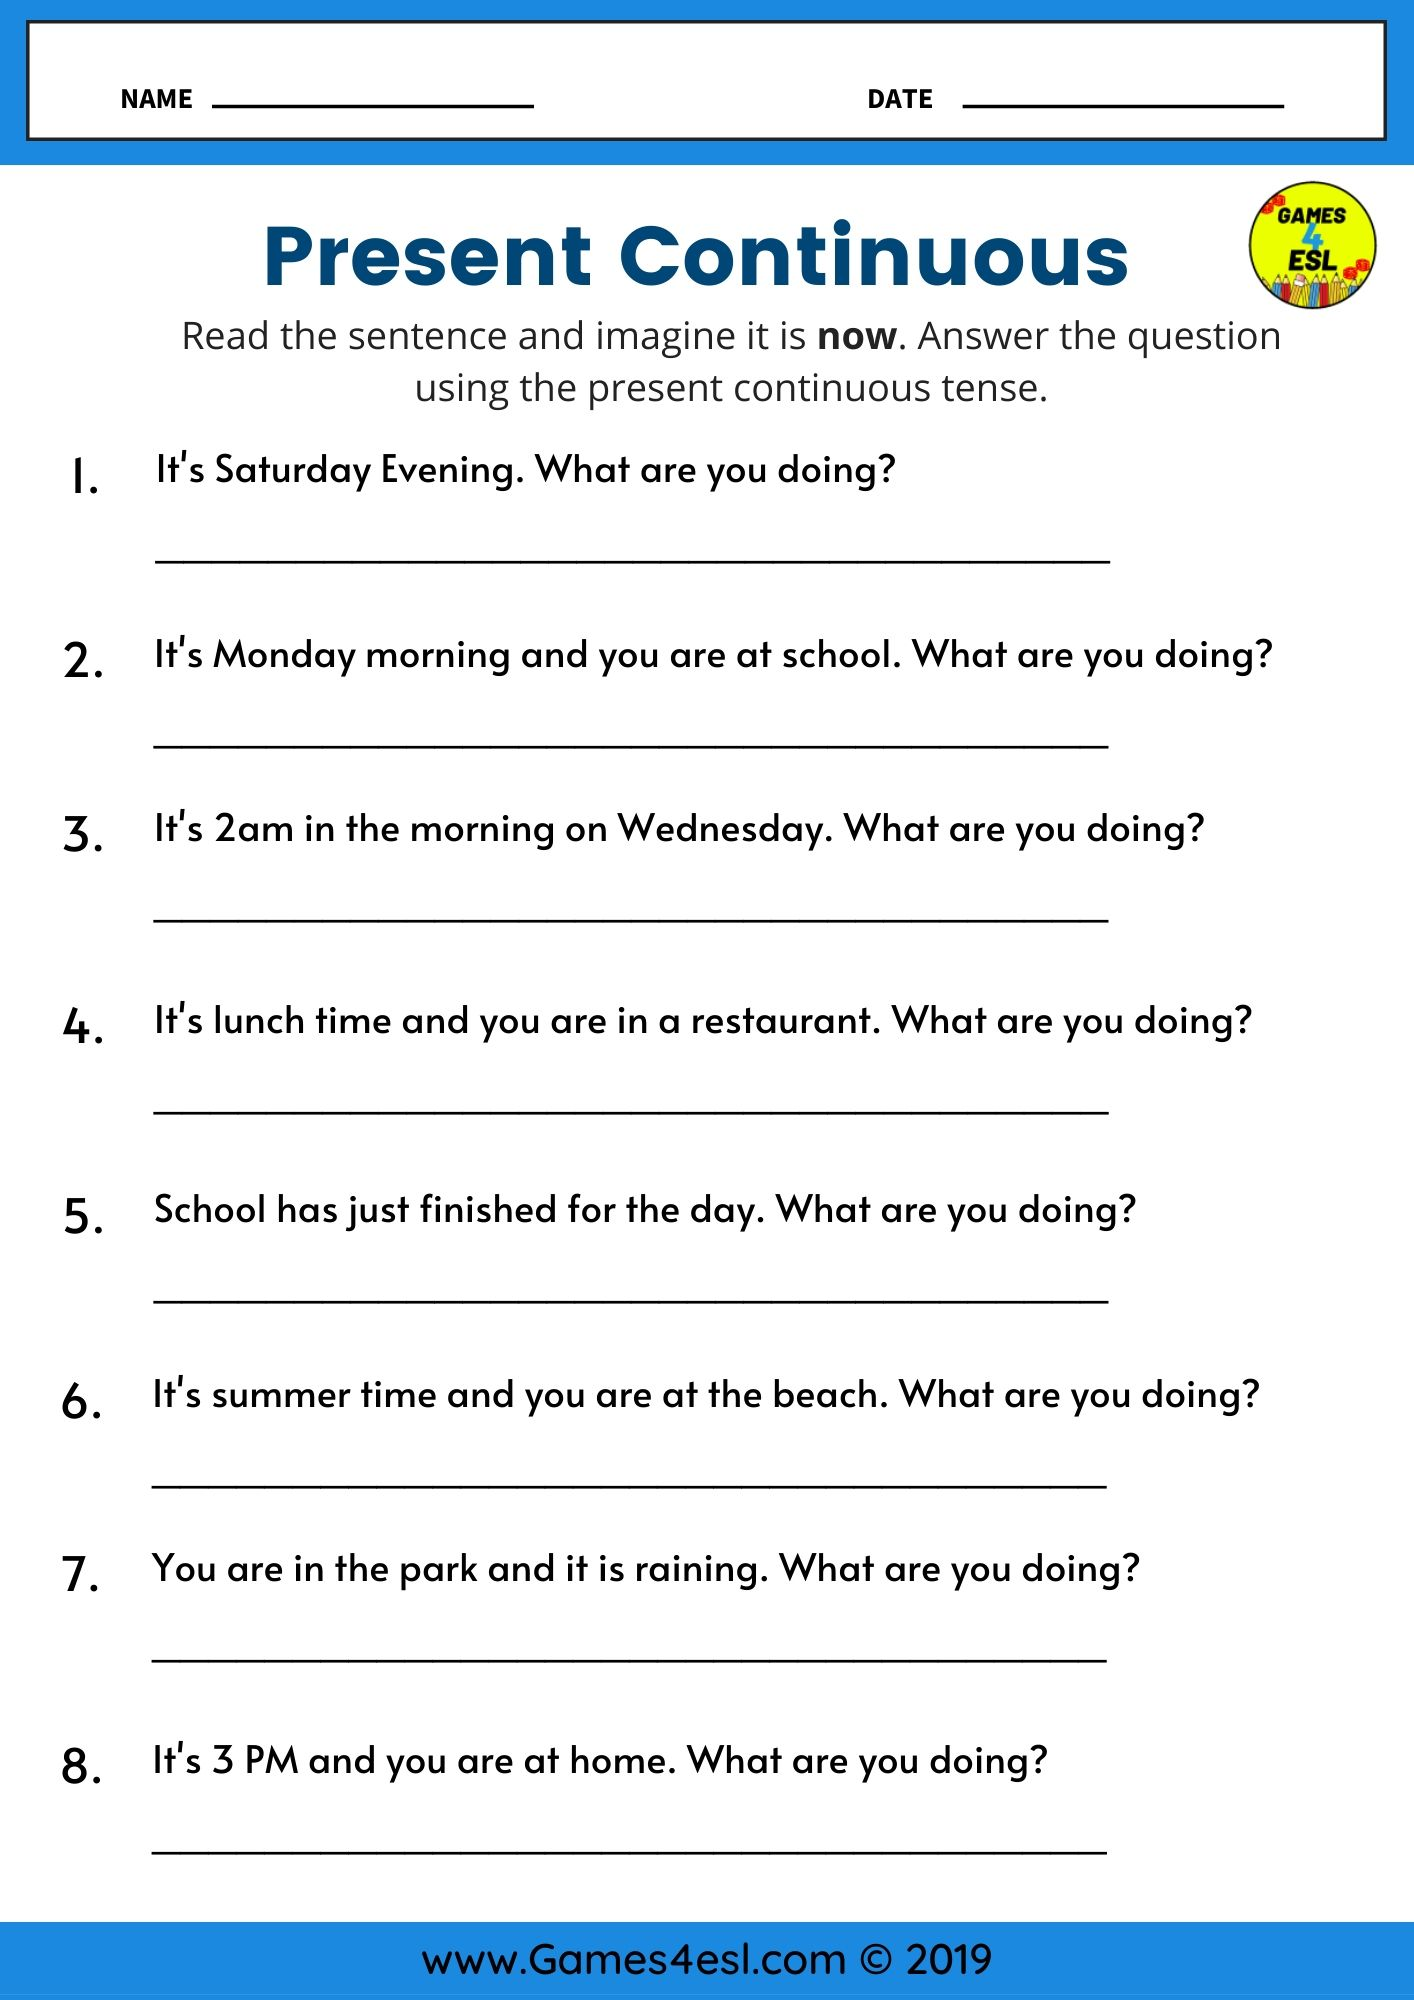 Present Continuous Questions Worksheet In